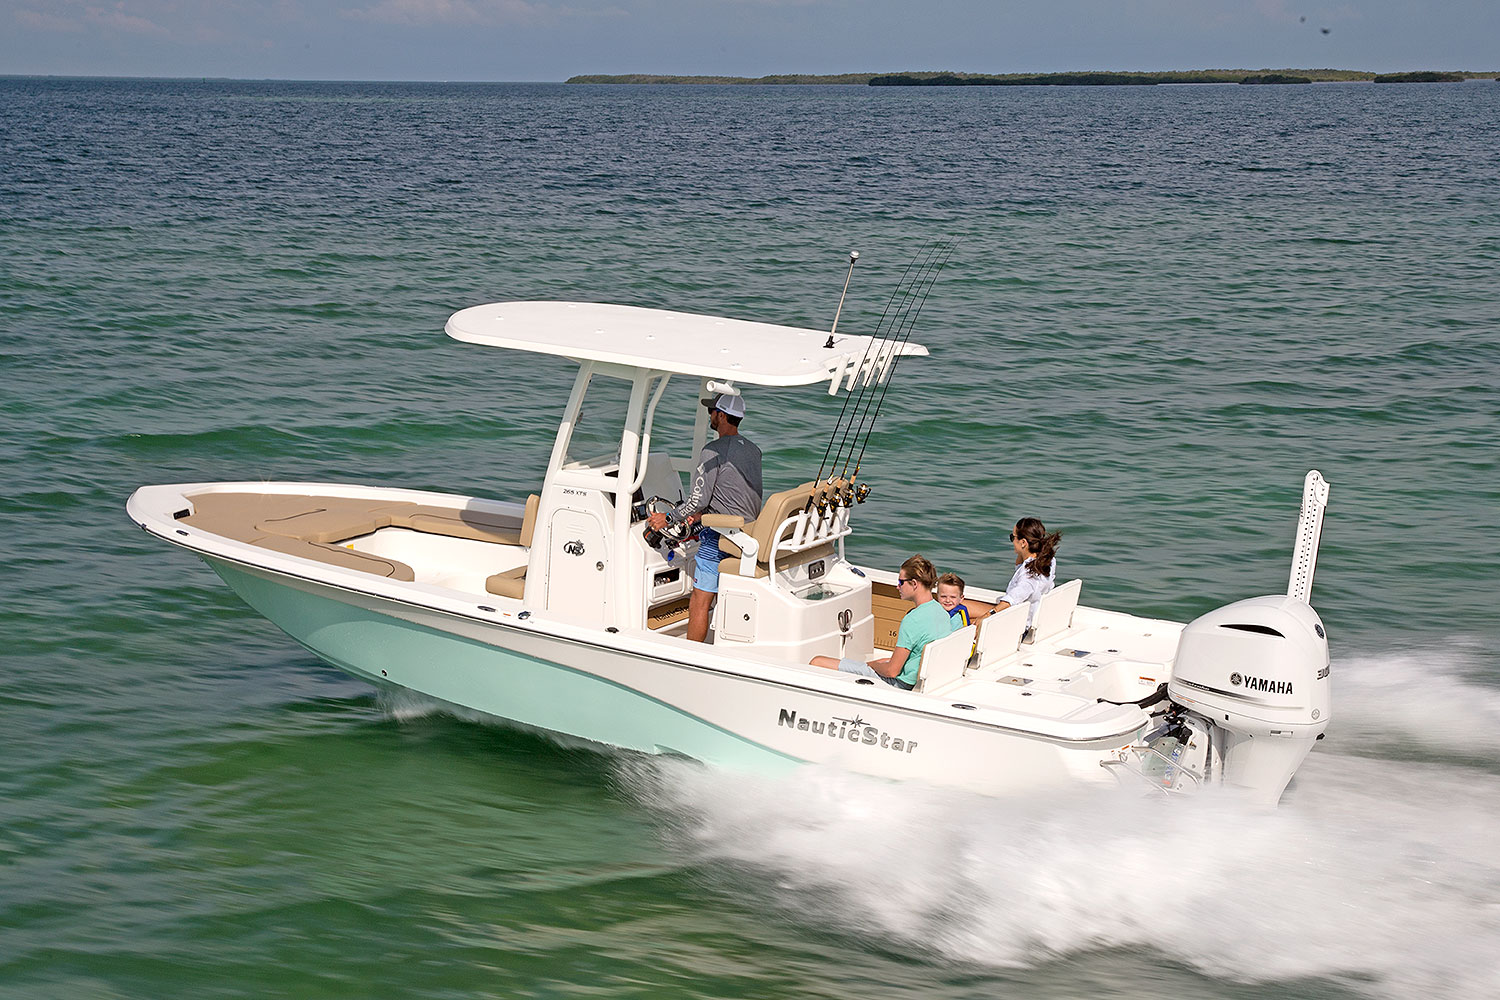 265XTS boat on the water